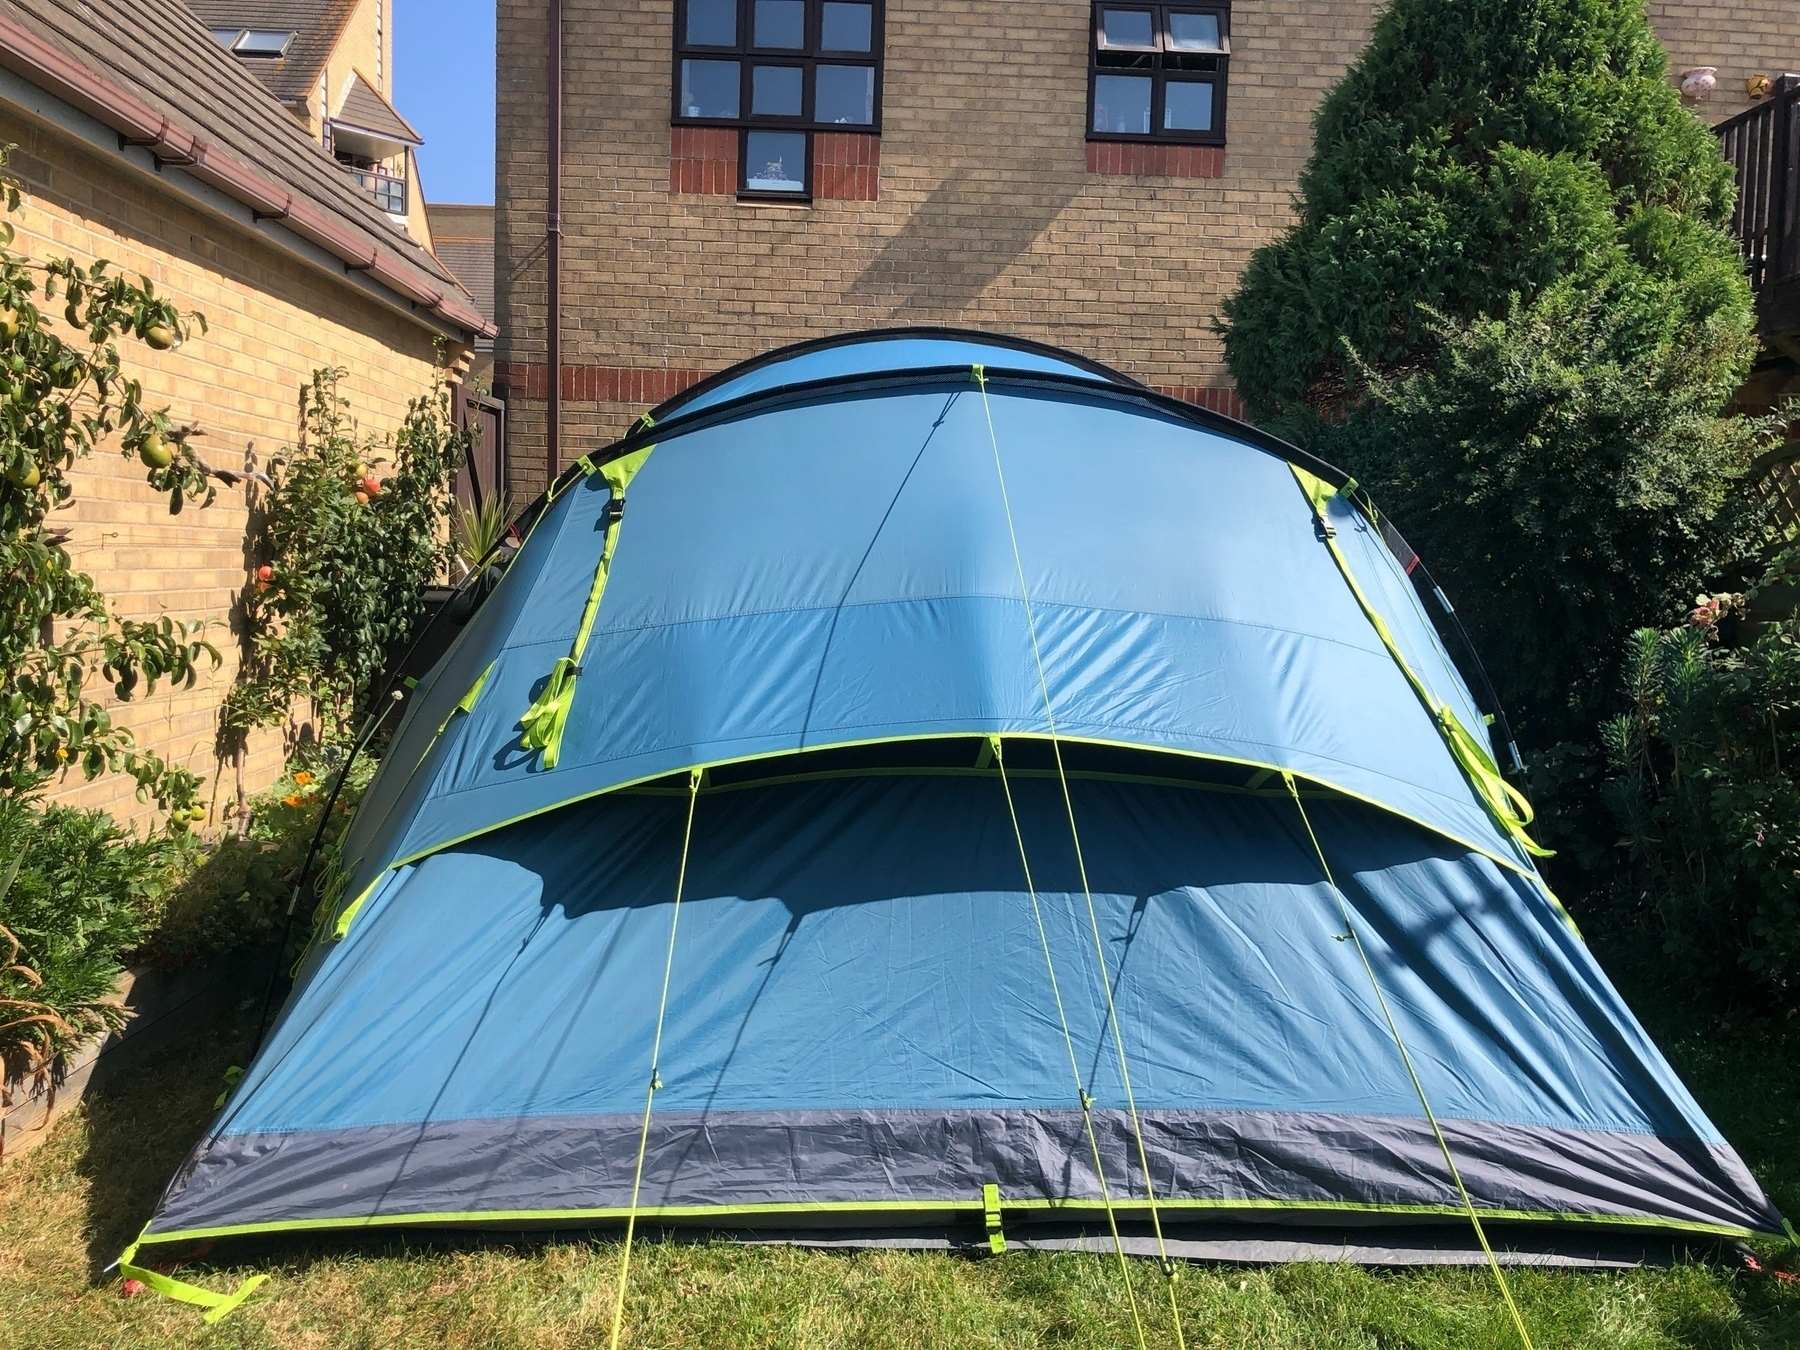 A tent pitched jn a back garden.